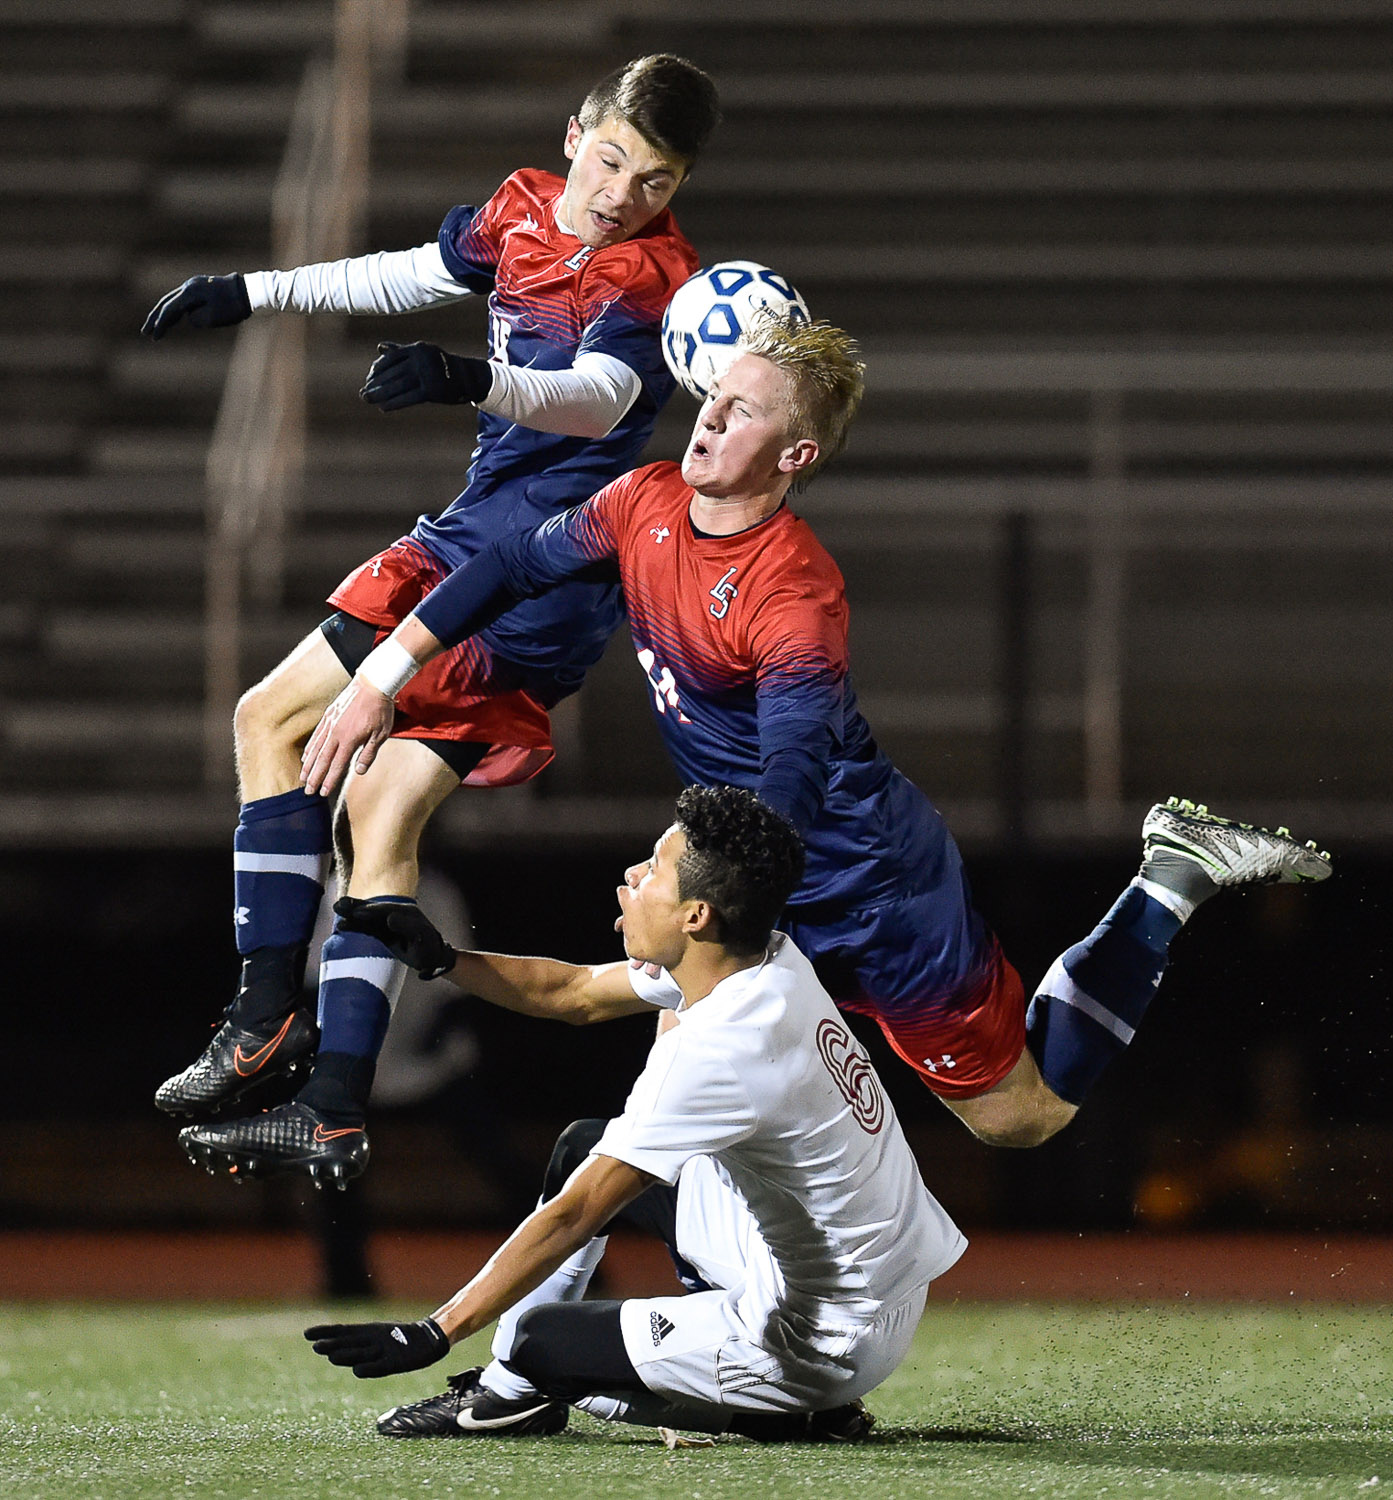 Nikon D4s, 1/1600 @ f/2.8, ISO 6400, 300mm  Lincoln-Sudbury's Andre Kotikian and Landon DeCesare-Fousek get tripped up by Somerville's Edwin Mejia Sanchez as they battle for a loose ball during their north division 1 game at Manning Field in Lynn, Wednesday, Nov. 9, 2016. [Wicked Local Photo by David Sokol]